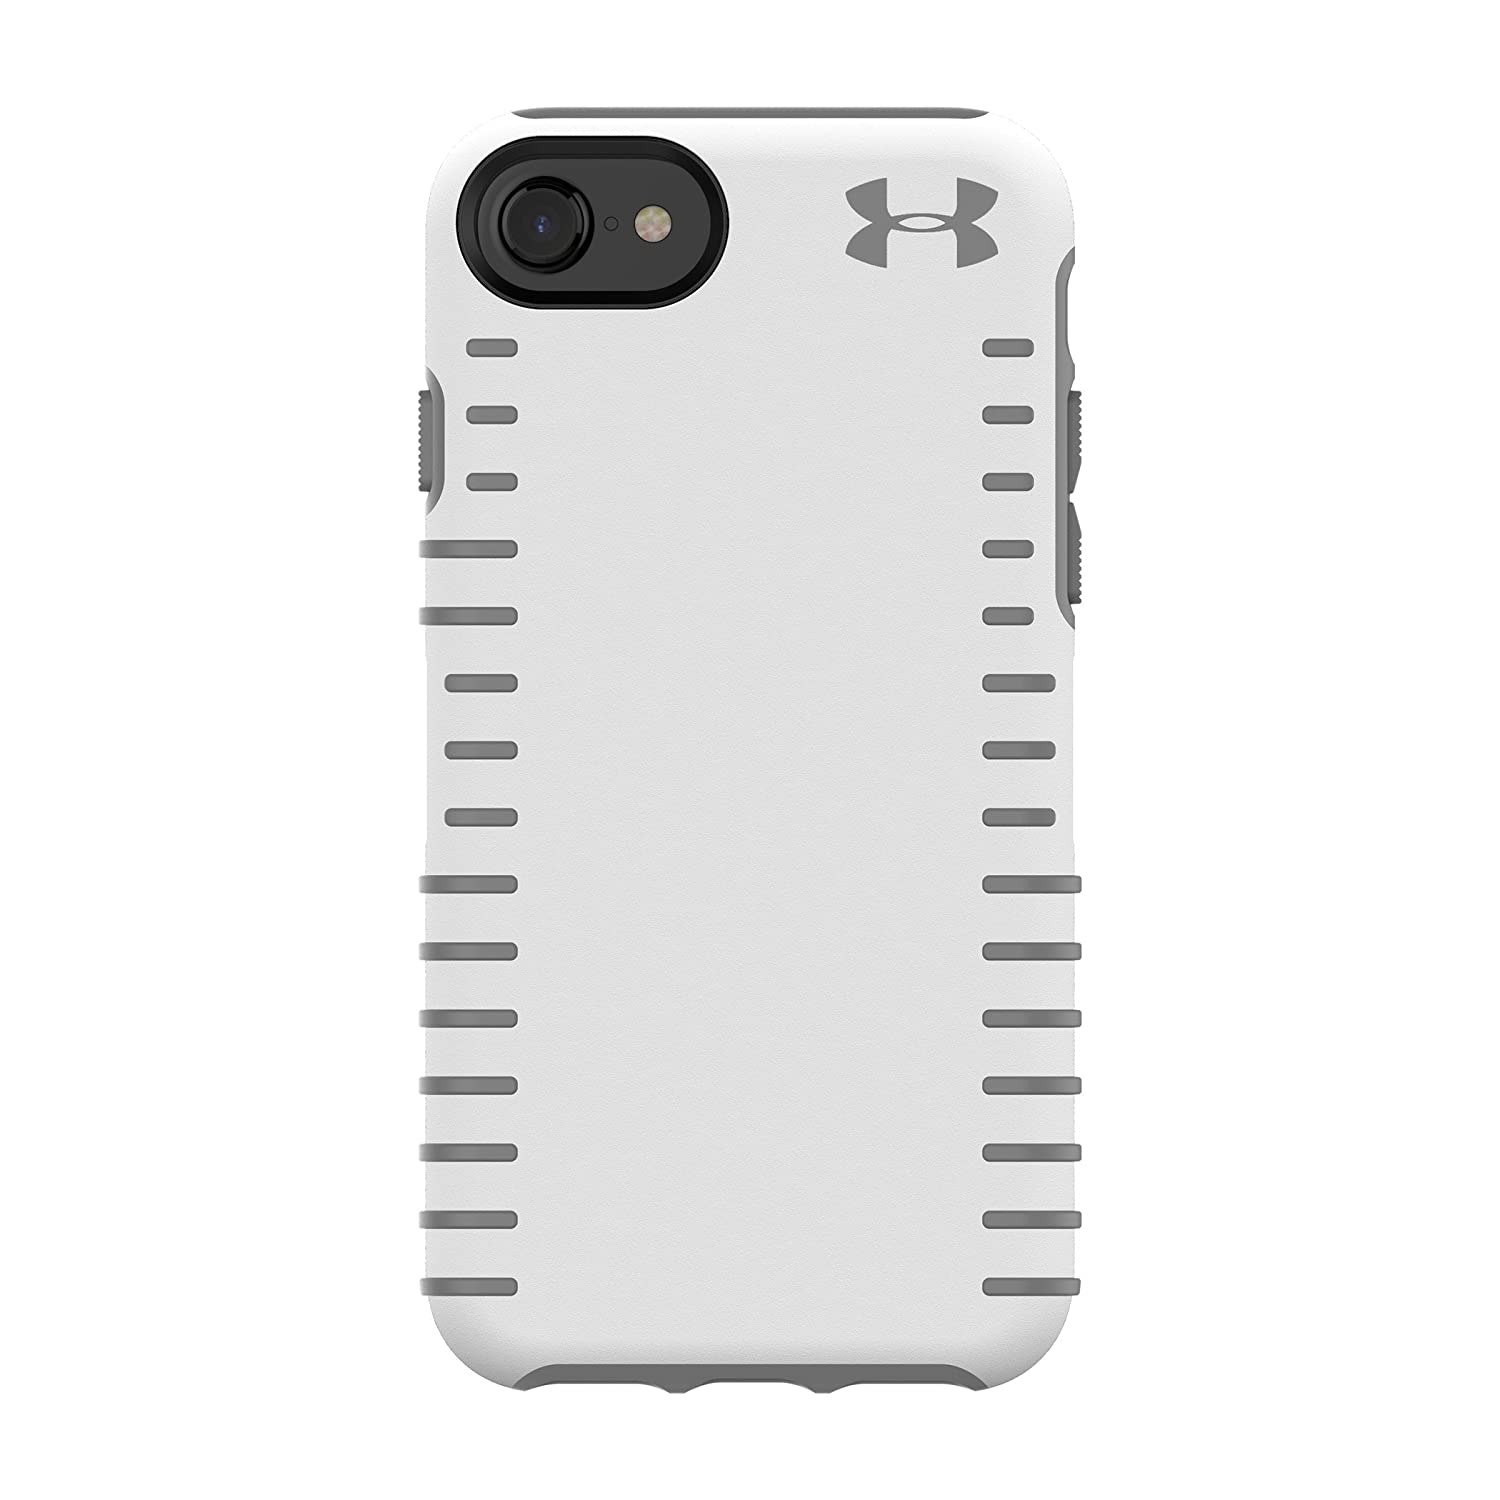 new arrivals 3d696 d85dd Under Armour UA Protect Grip Case for iPhone 8, iPhone 7 & iPhone 6/6s -  White/Graphite